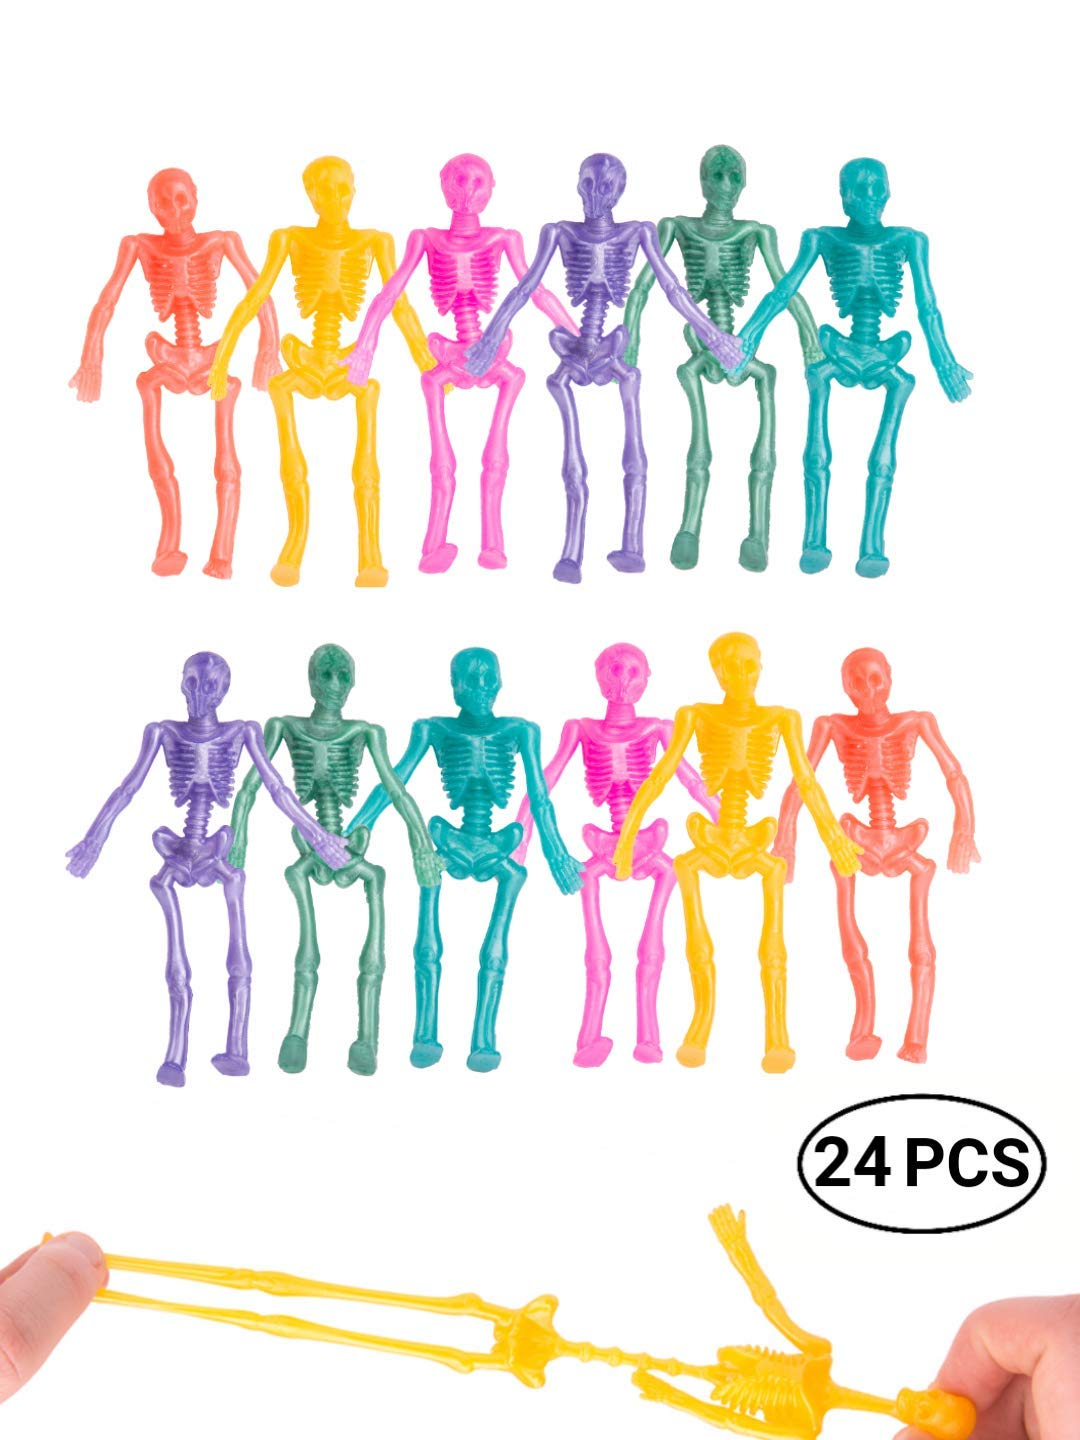 UpBrands Stretchy Toys Bulk Pack 8 Glitter Colors, Kit for Birthday, Halloween Party Favors for Kids, Goodie Bags, Easter Egg Basket, Pinata Filler, Small Toys Prizes (24 Pack, Stretchy Skeletons) by UpBrands